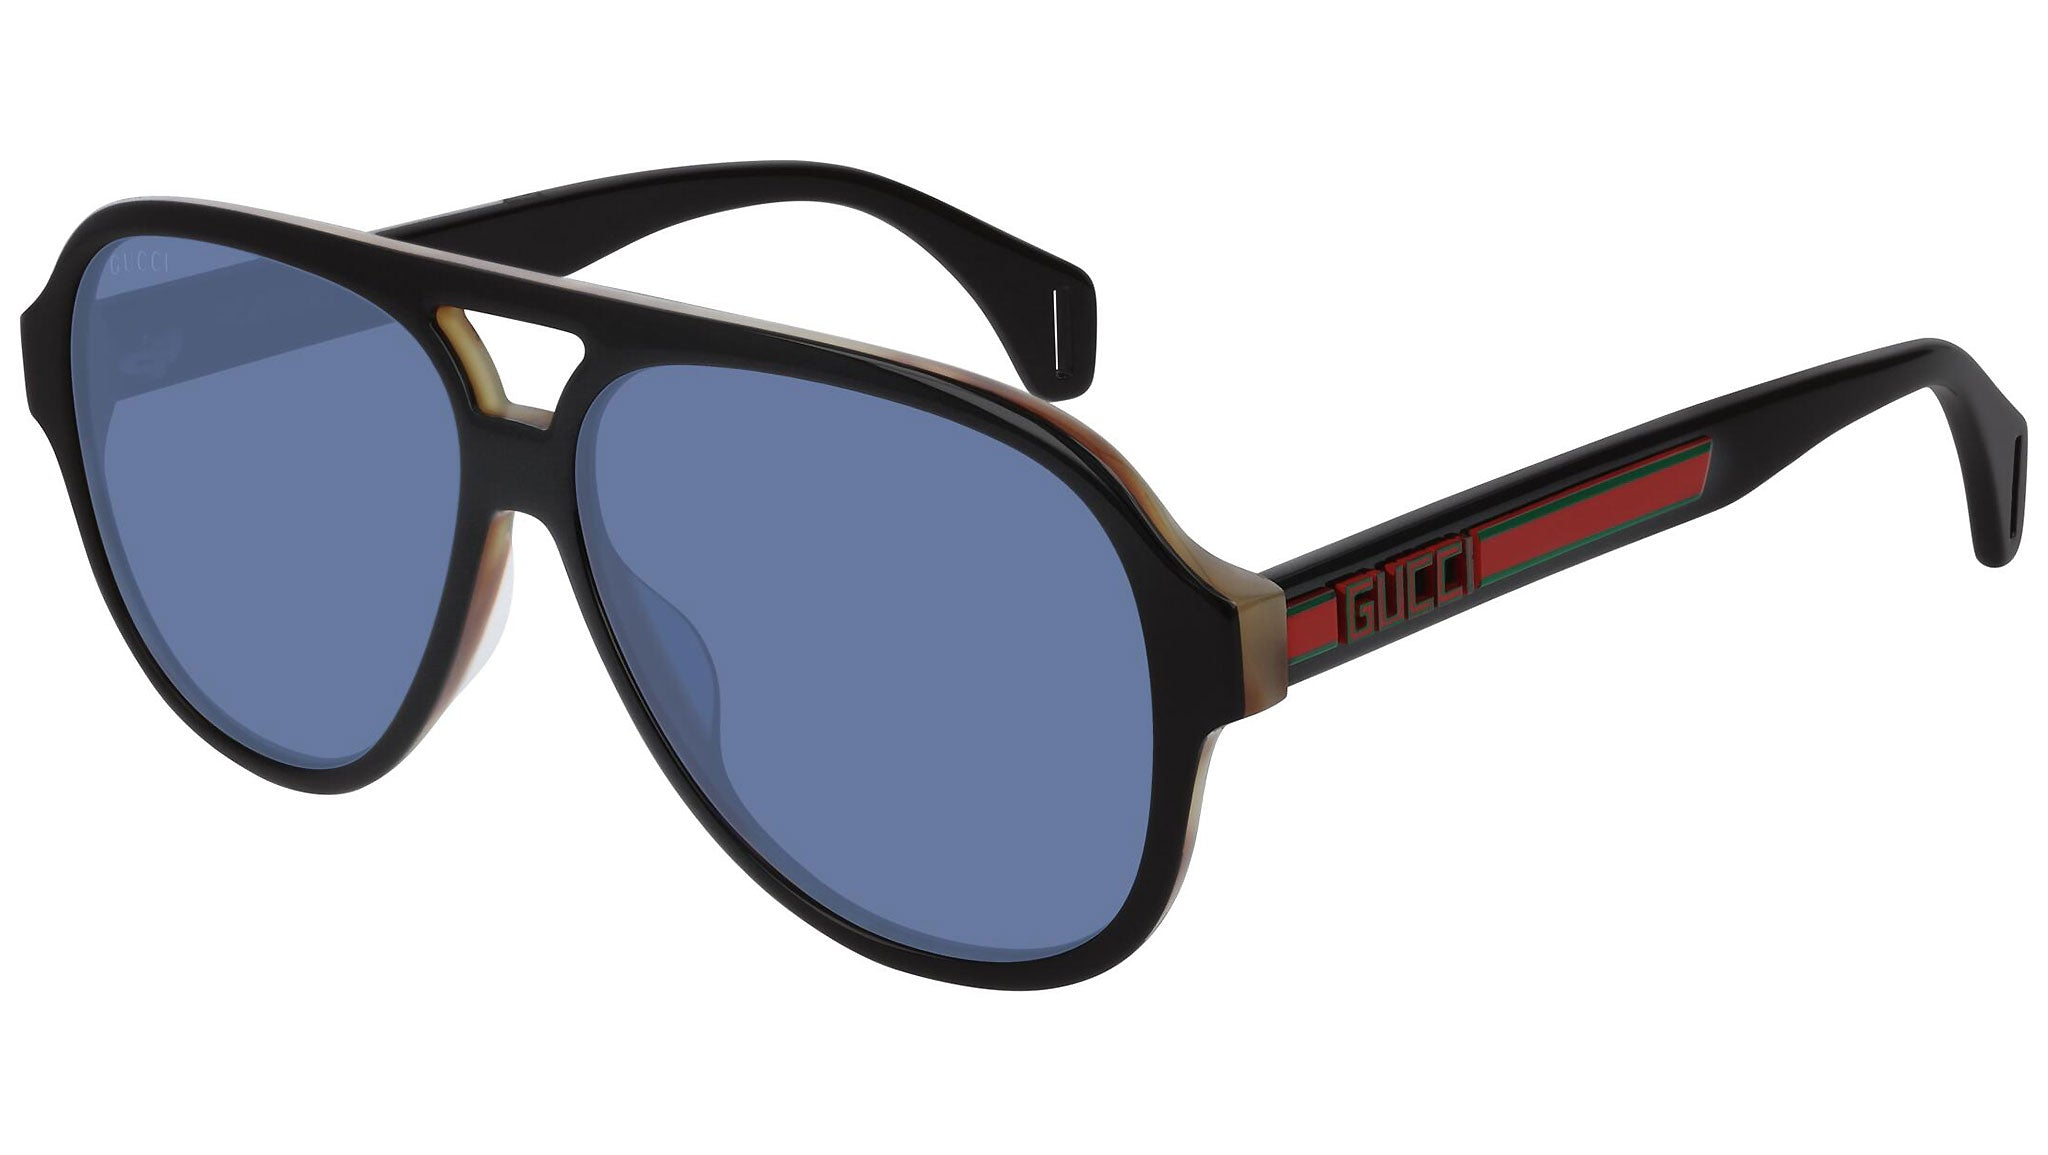 GG0463S havana black and bluette